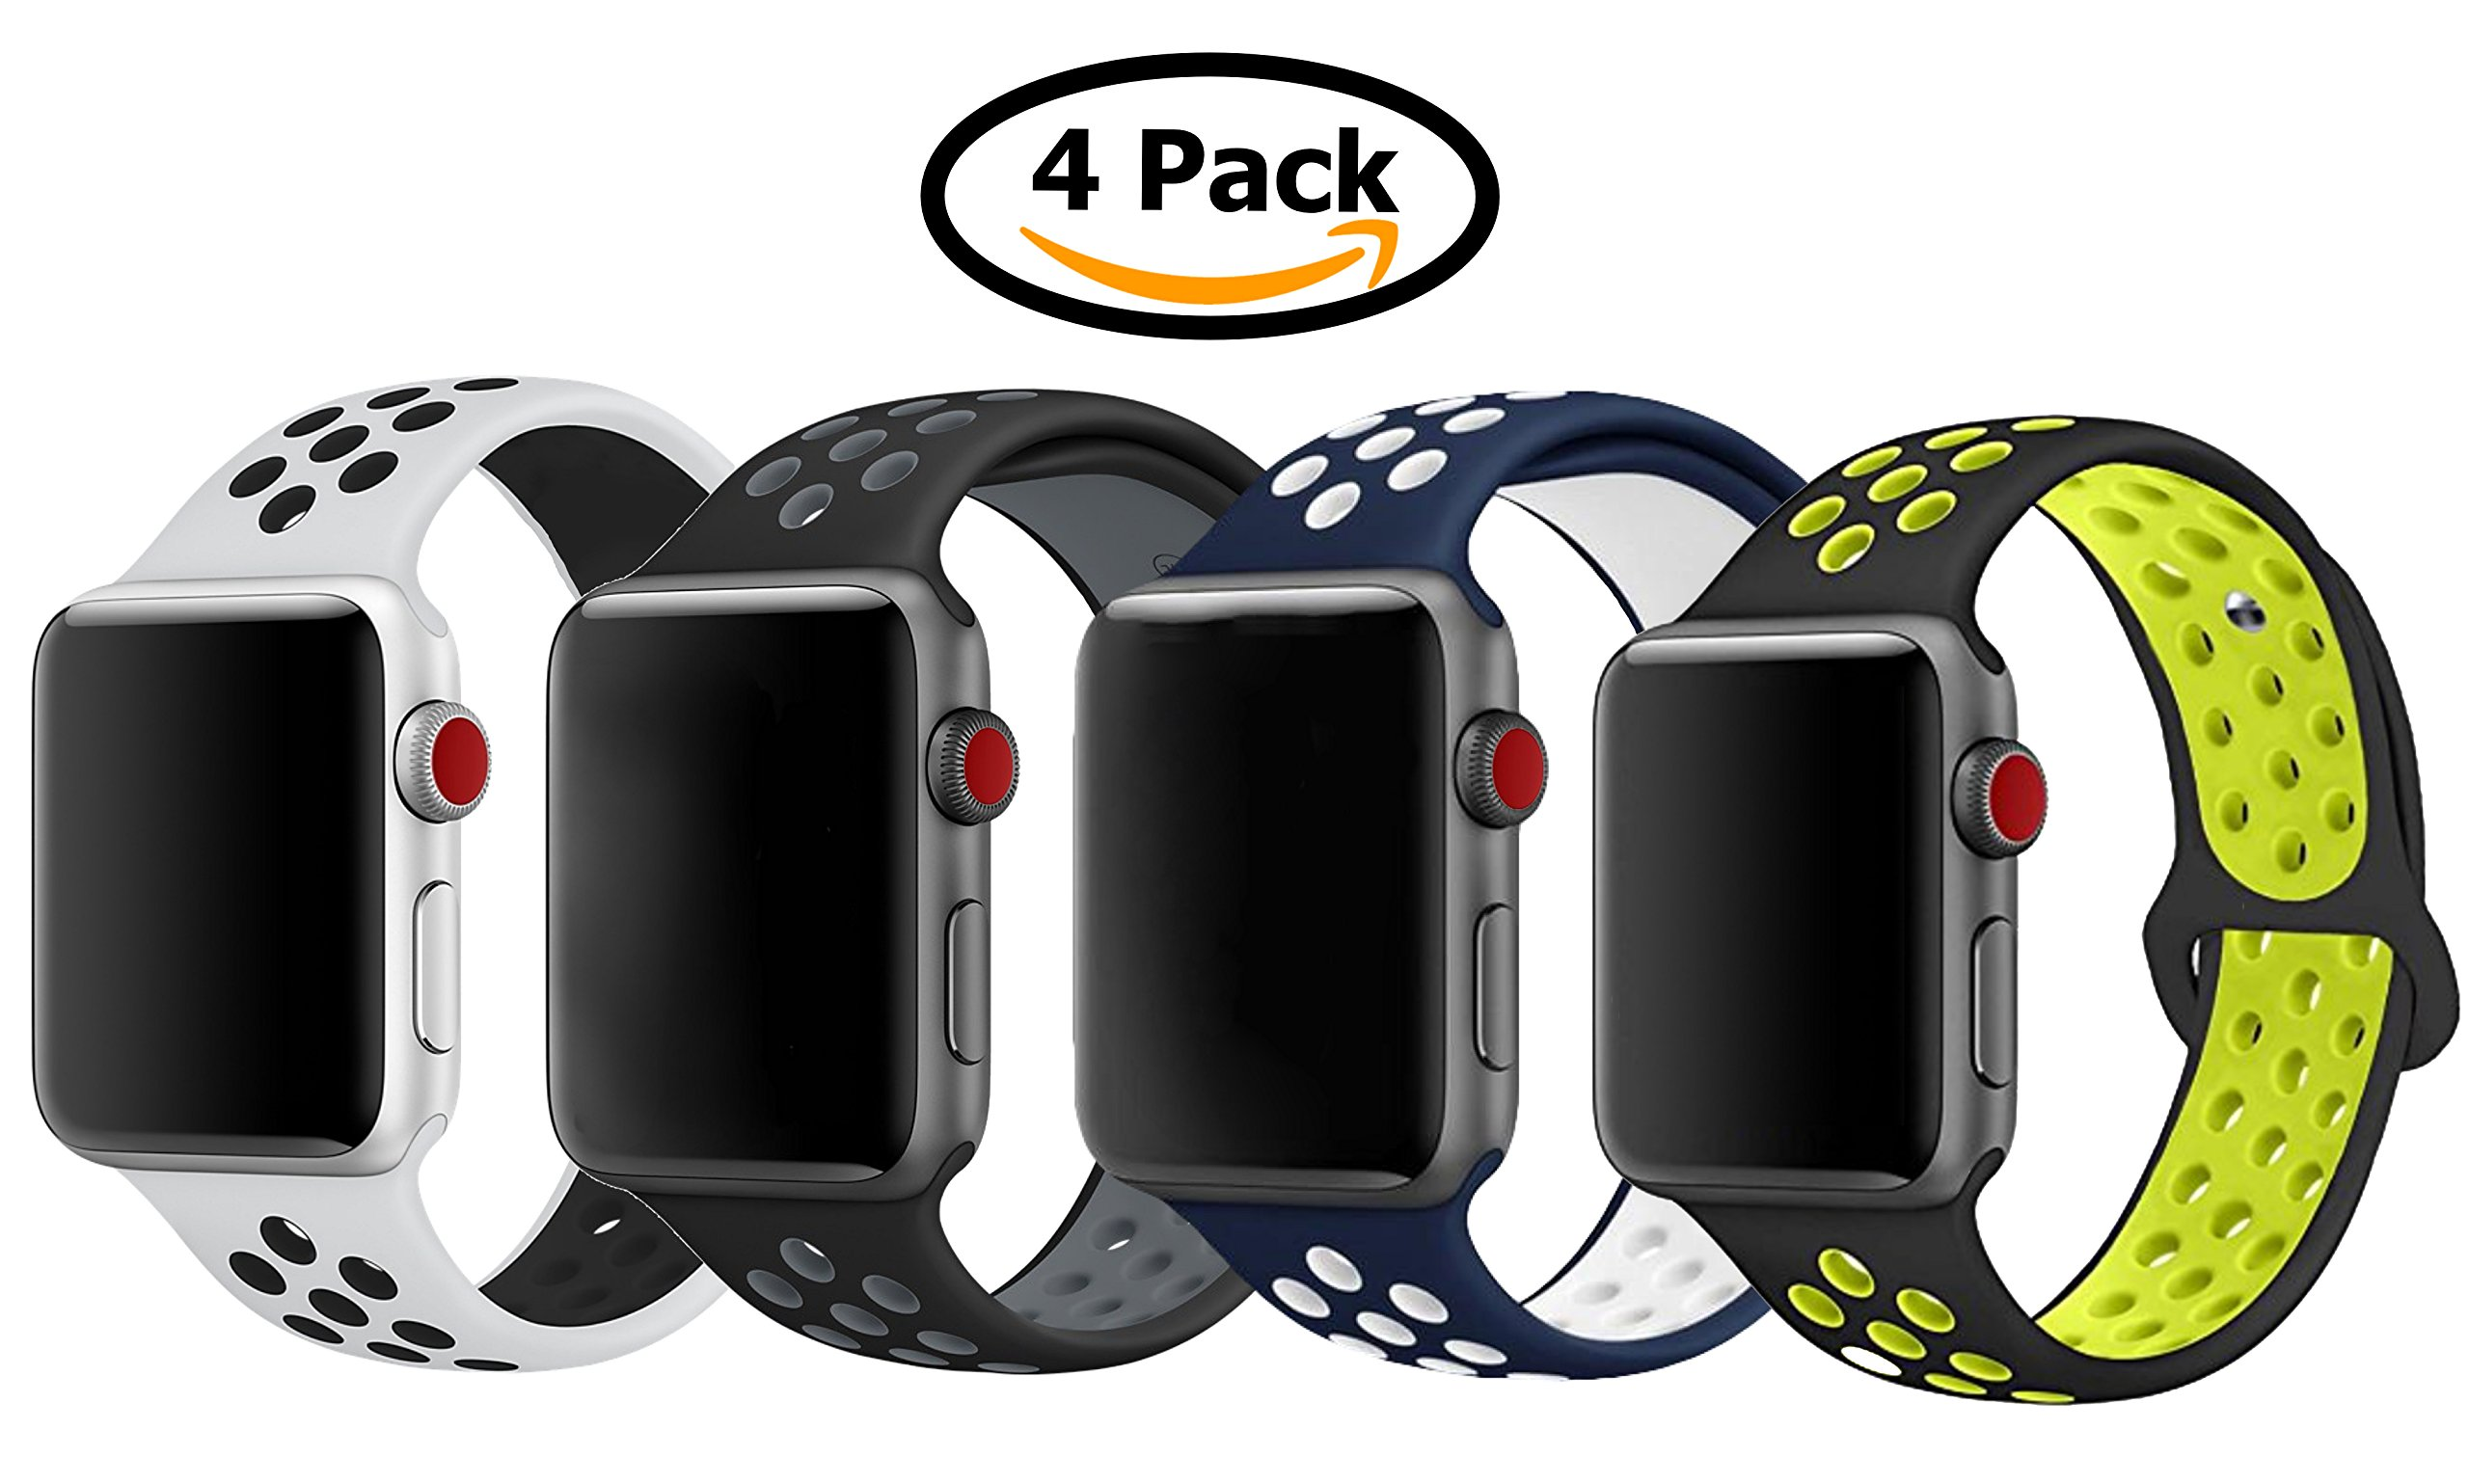 4 Pack Band for Apple Watch 38mm 42mm, Soft Silicone Sport Strap Replacement Bracelet Wristband for Apple Watch Series 3, Series 2, Series 1, Nike+, Edition, S/M M/L Size (Sport NK2, 42mm M/L)